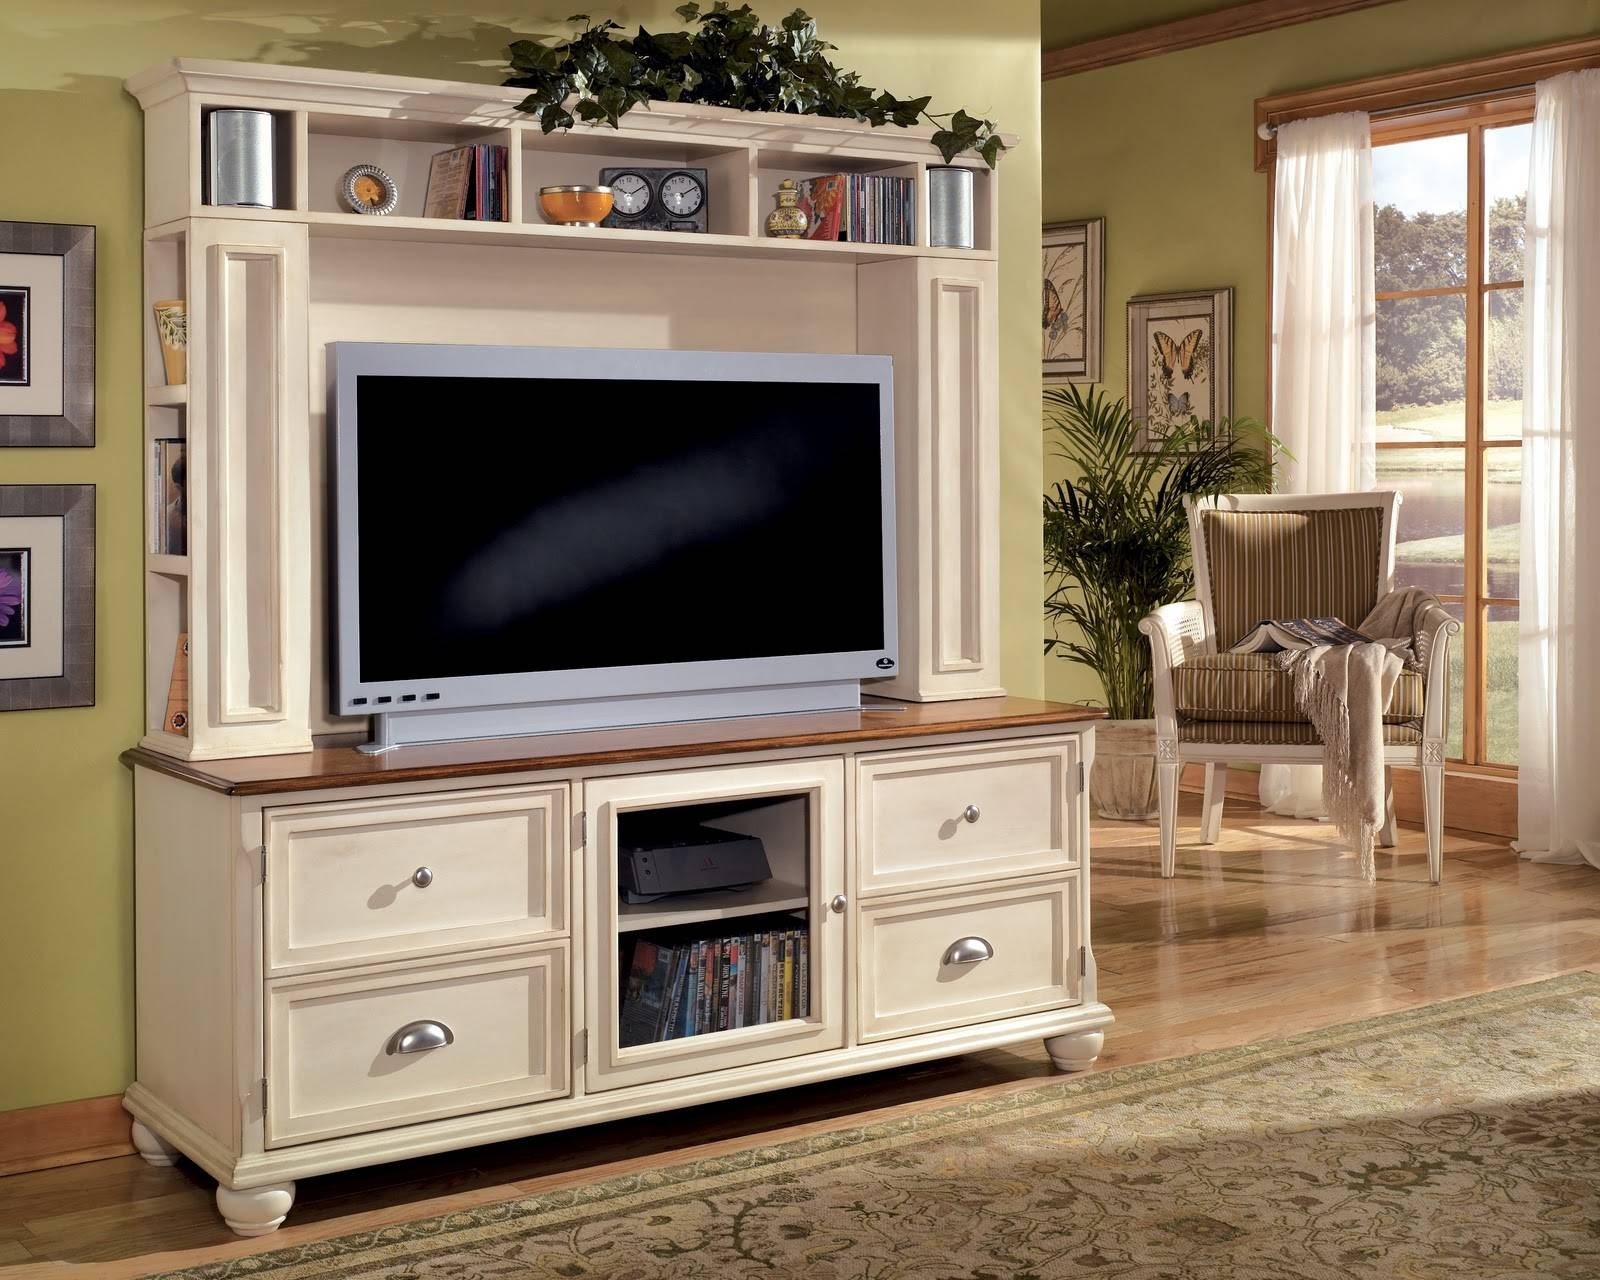 Furniture. Media Cabinet With Tv Stand And Book Case Plus Several intended for Big Tv Stands Furniture (Image 6 of 15)